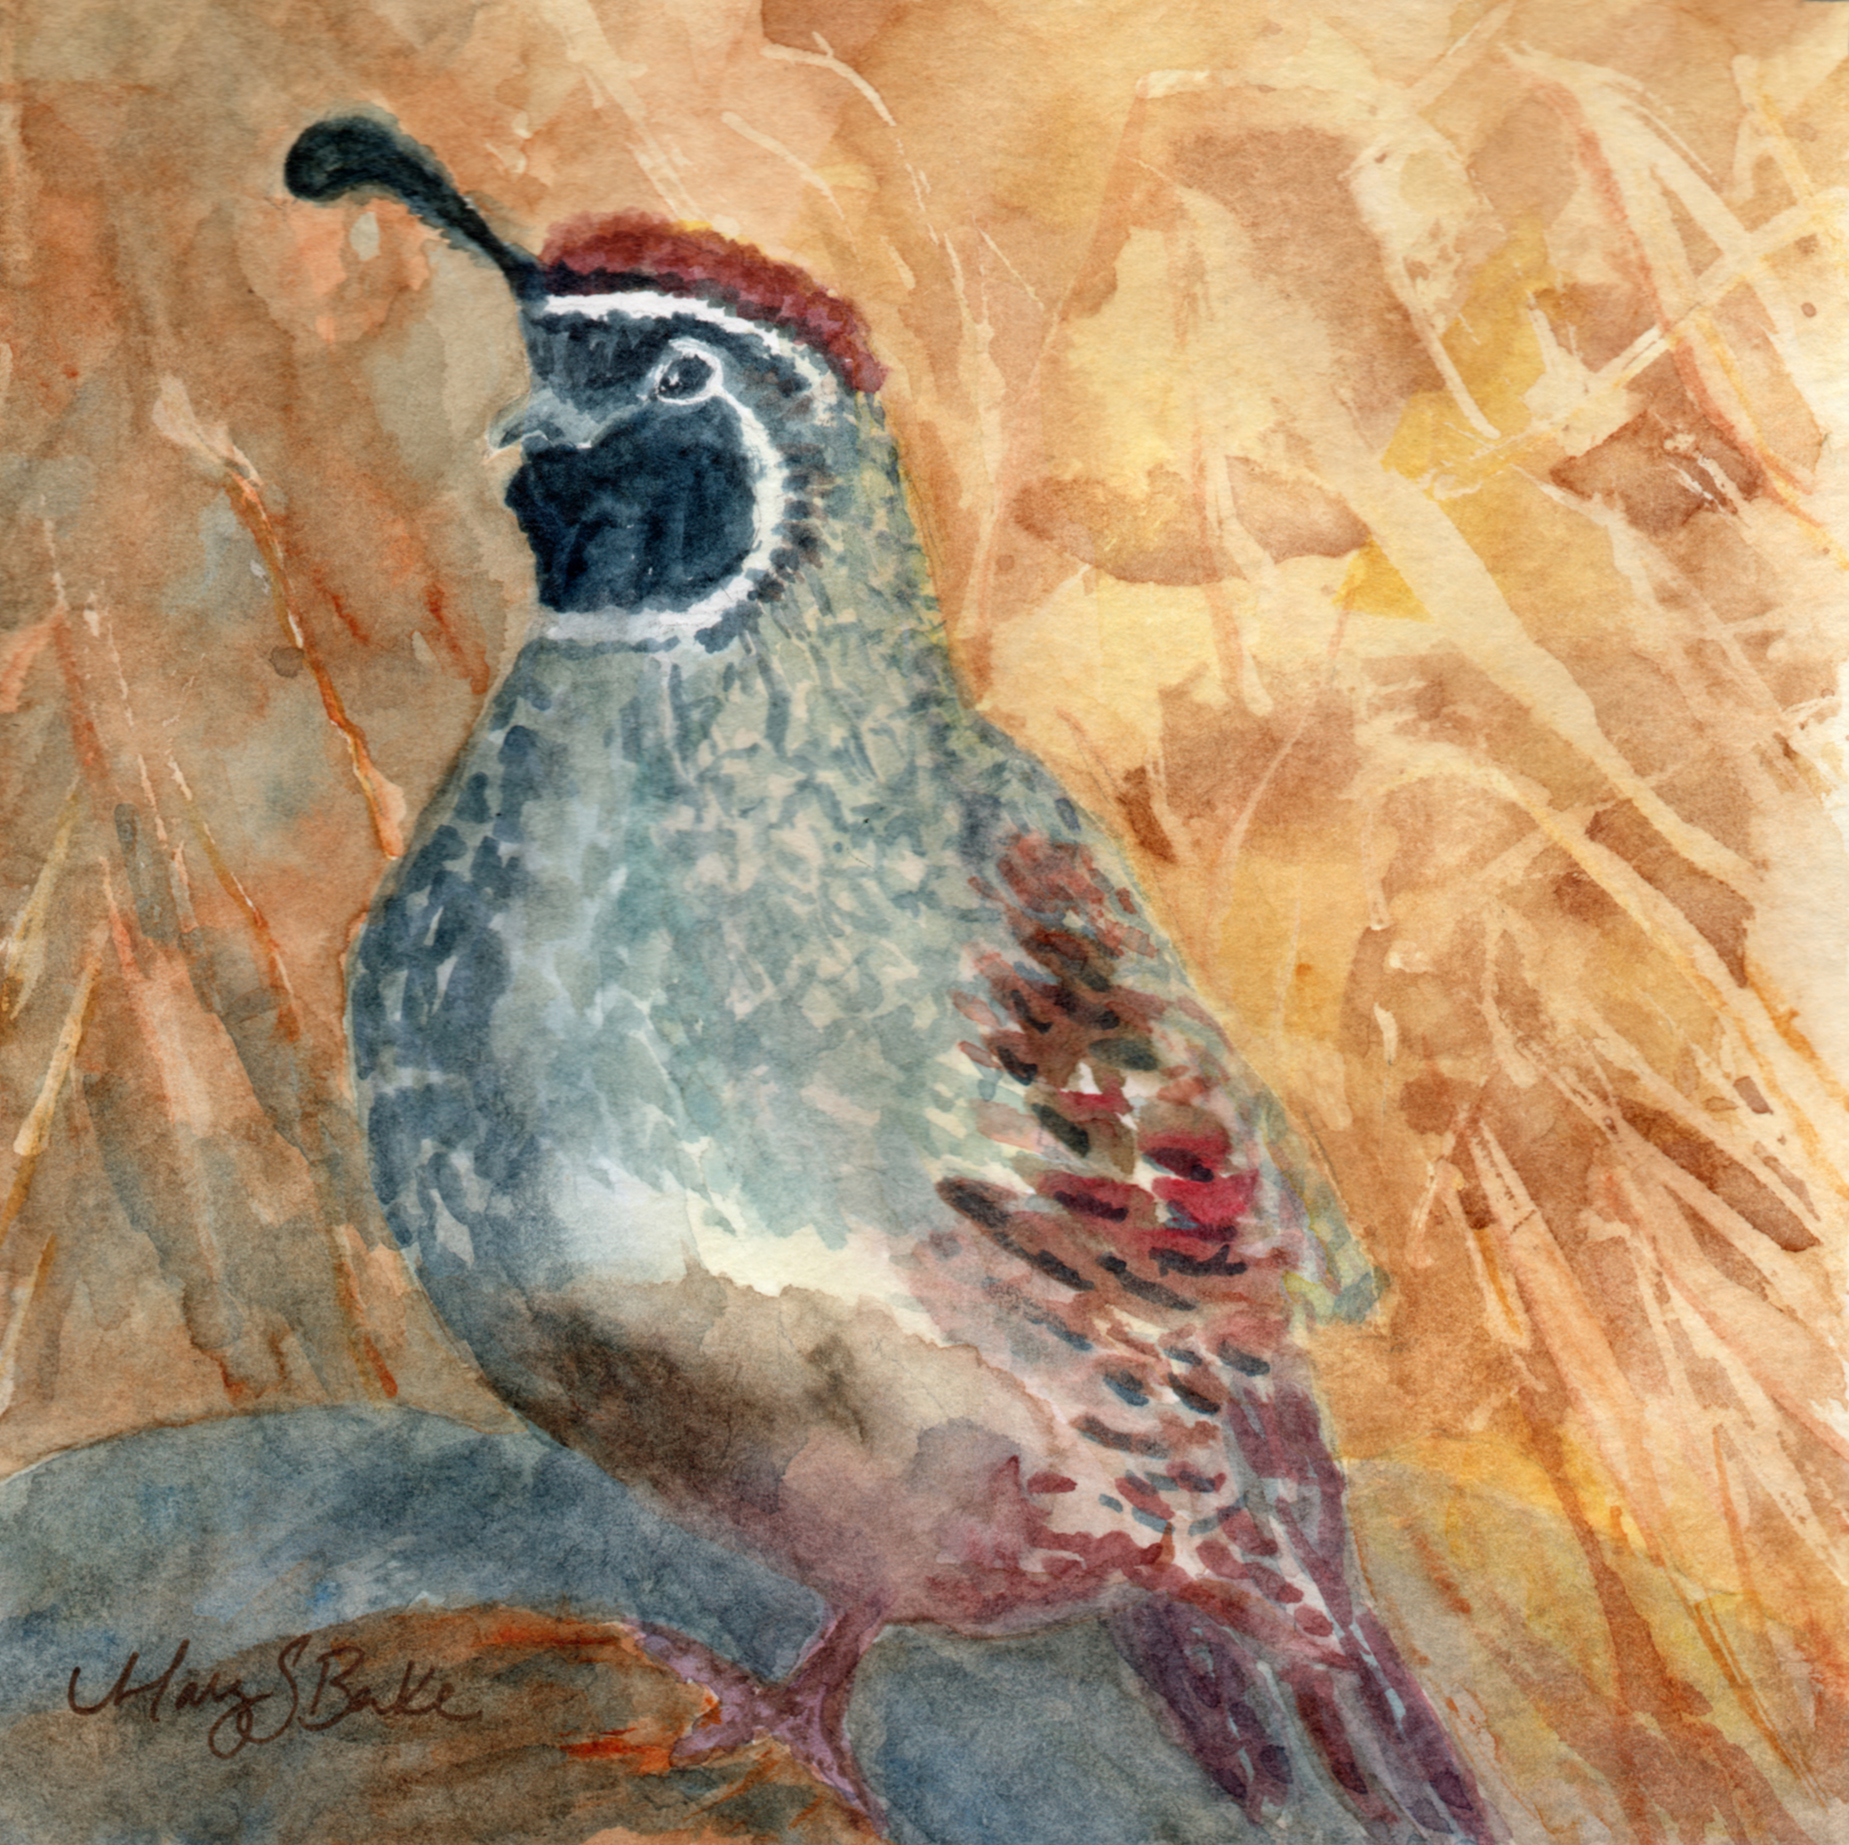 A Gambel's quail is painted in delicate watercolors set against an earth-colored abstract background by Mary Benke